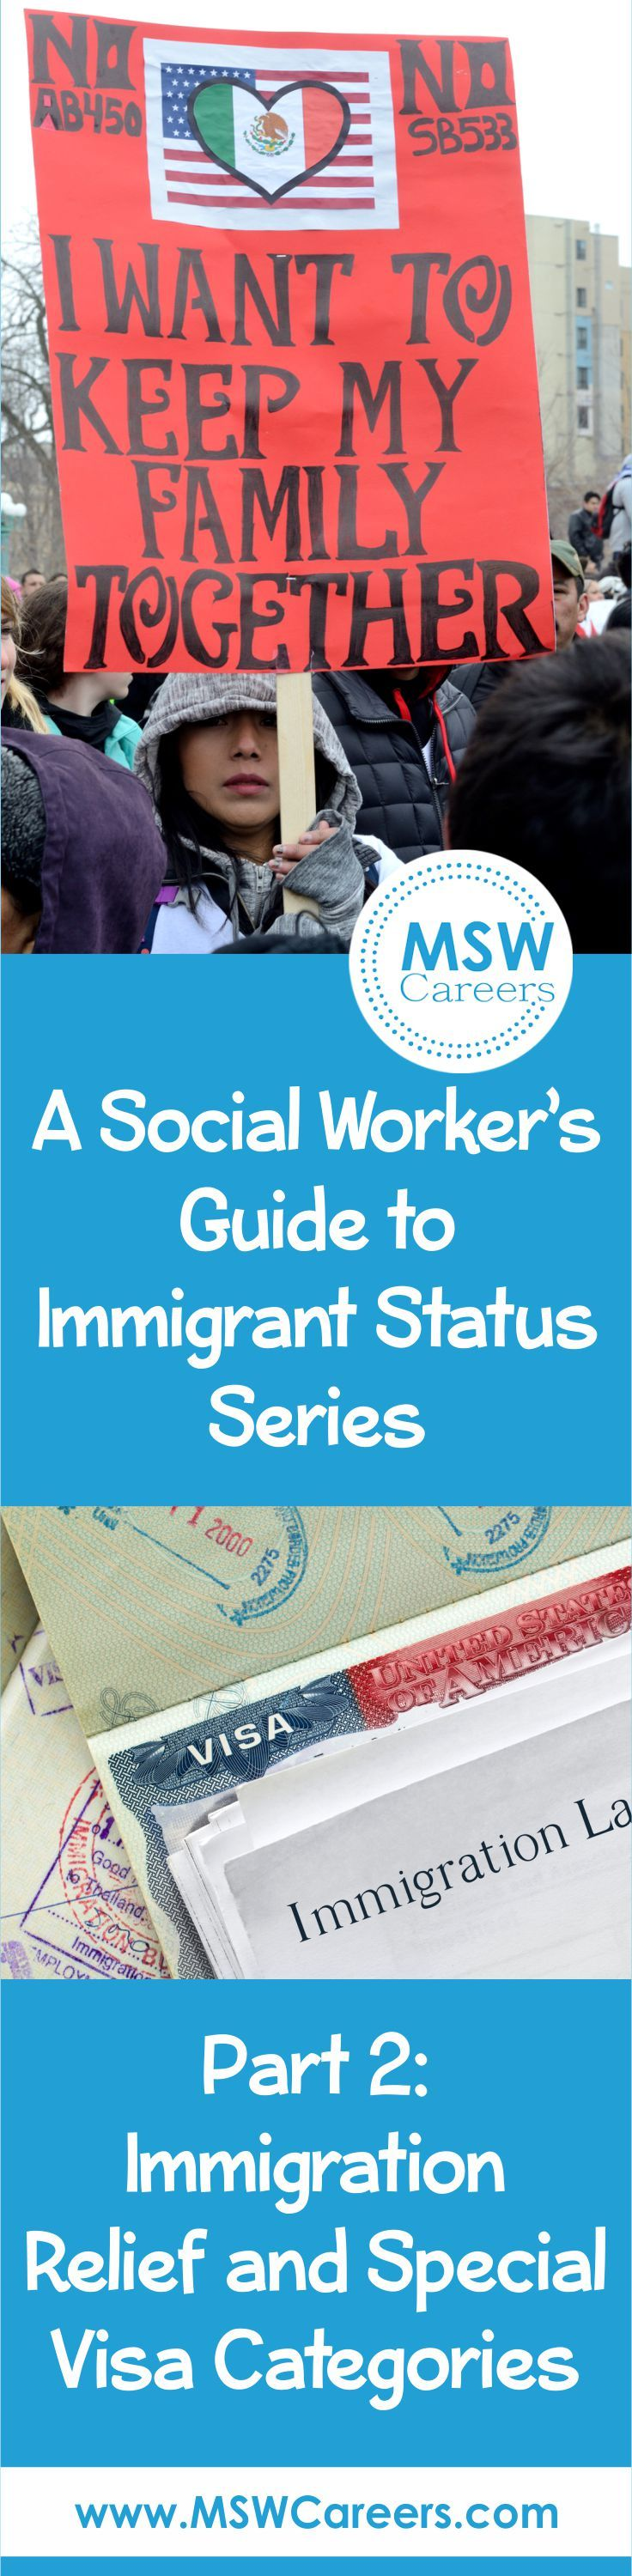 Social workers can help their clients apply for immigration relief. Learn how social work and immigrant visa status go hand in hand.